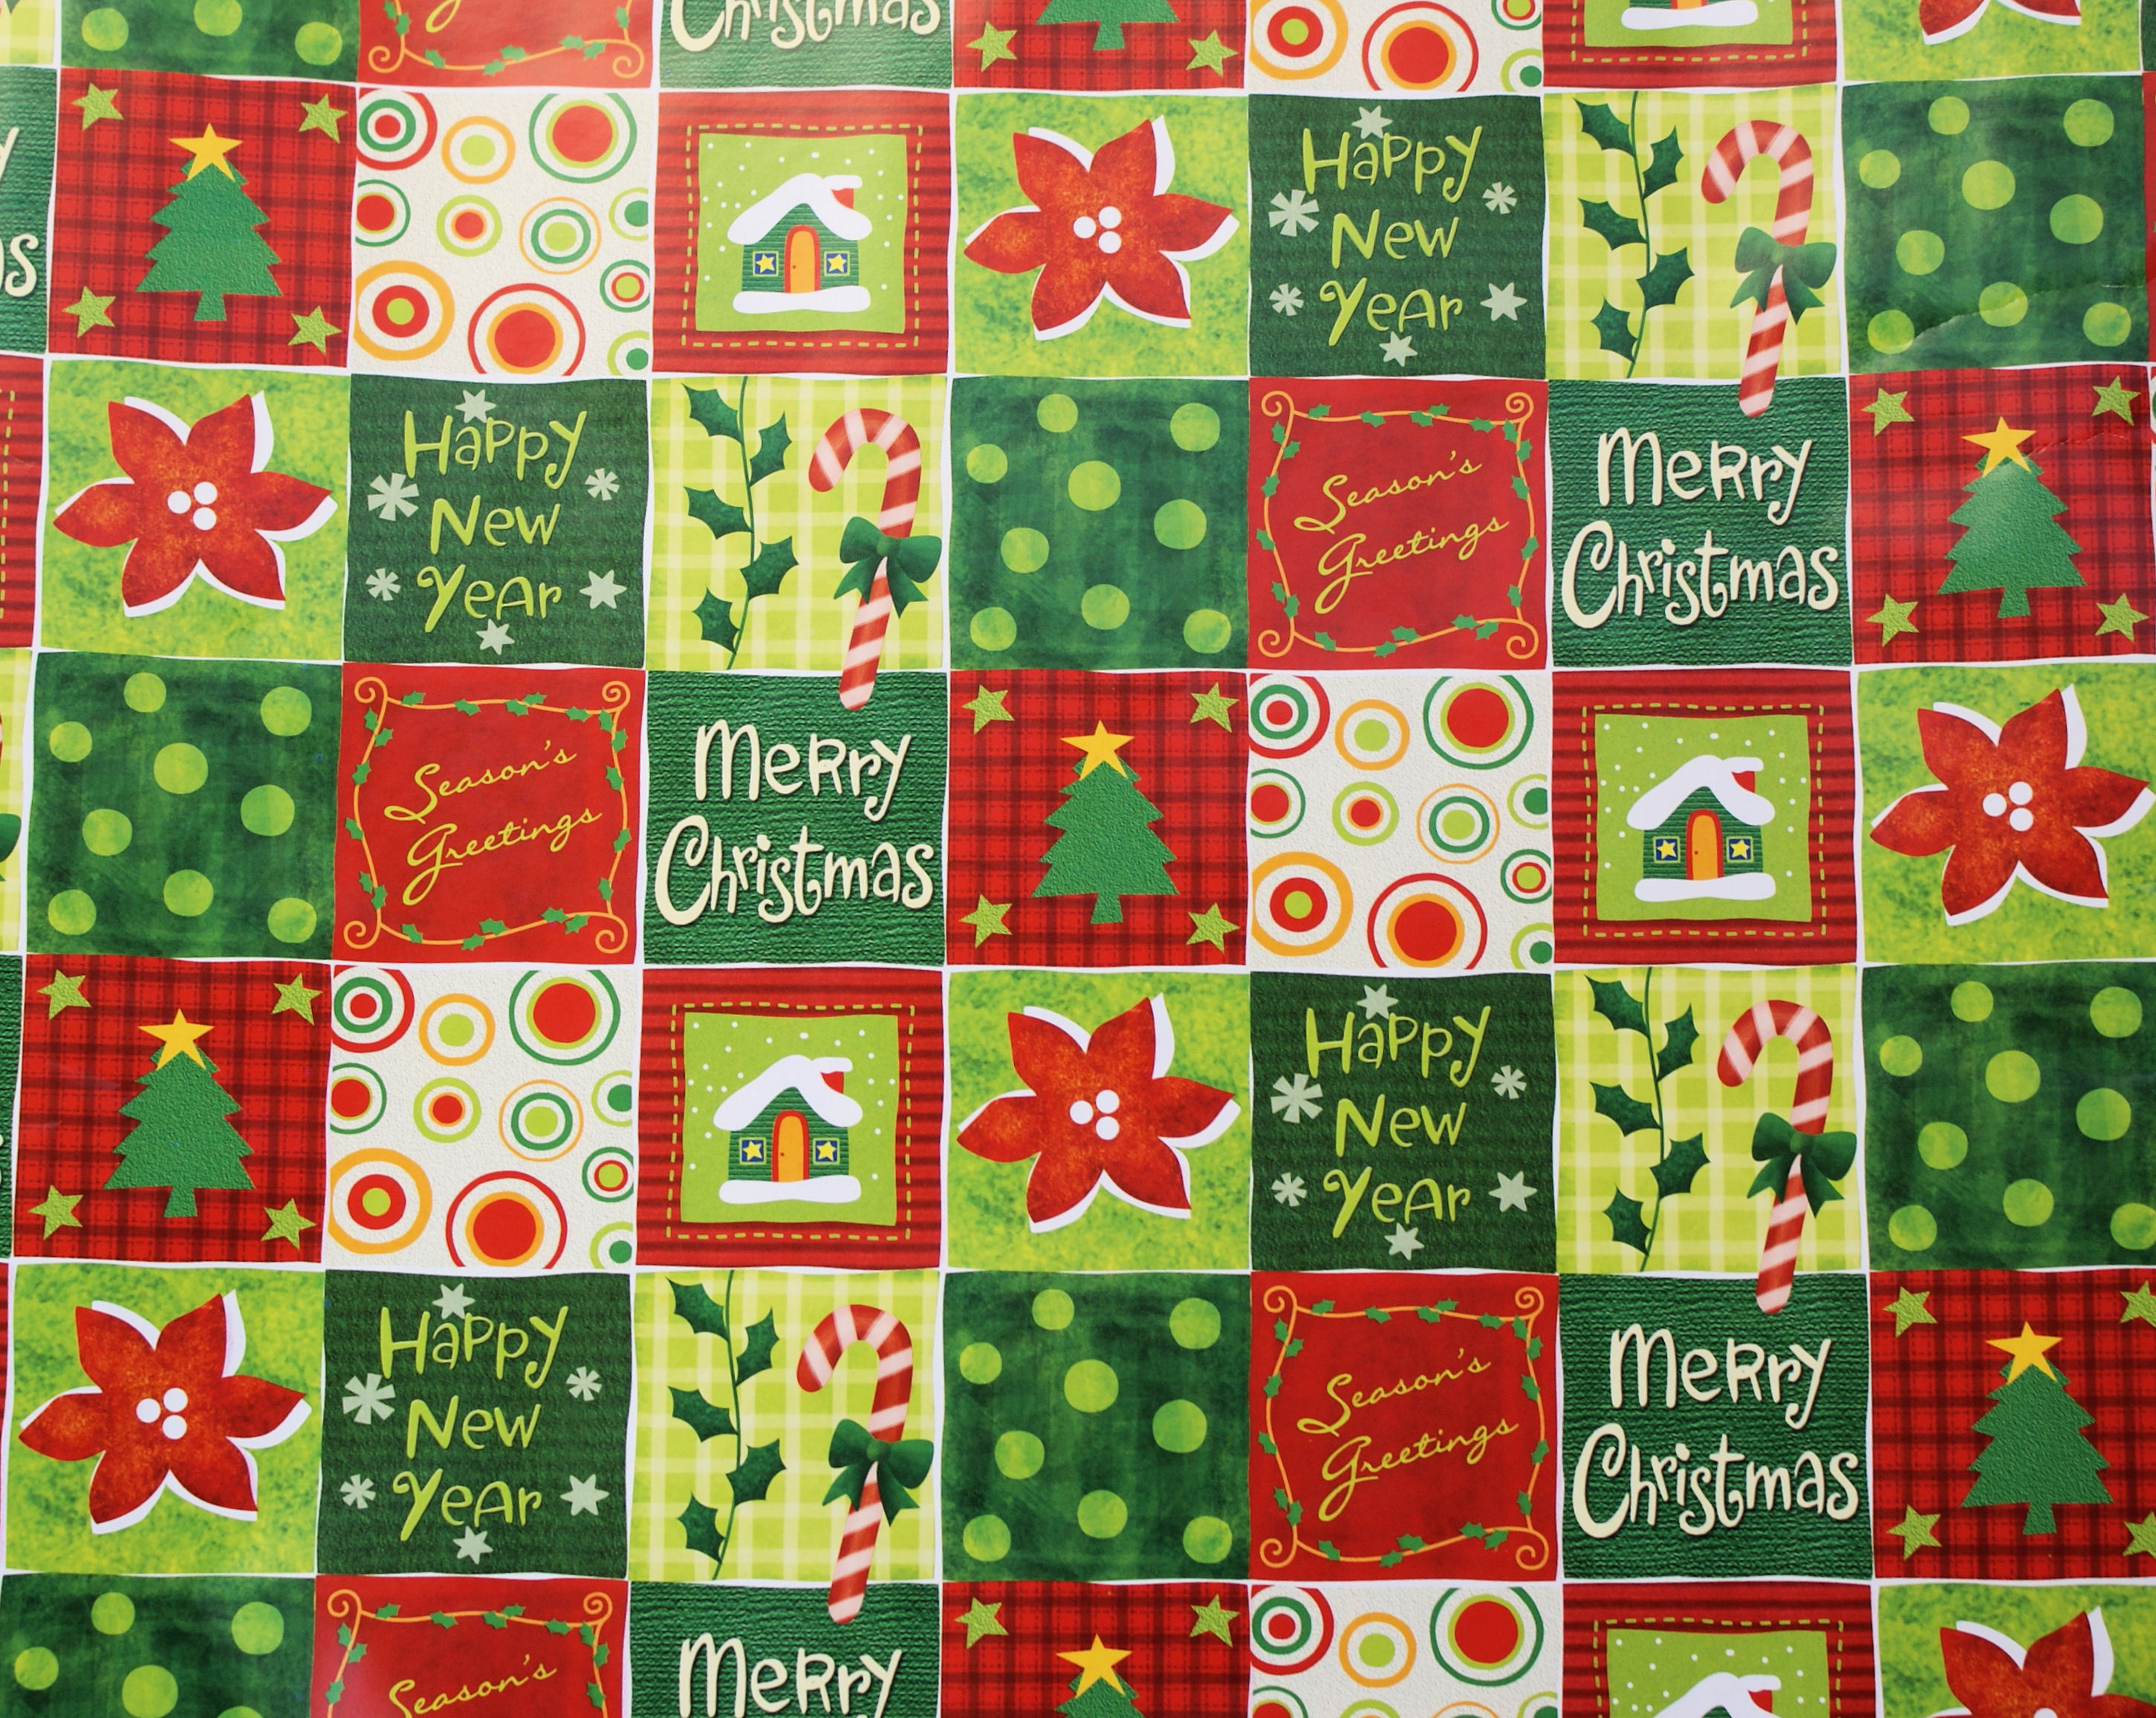 Home Design Software Free For Ipad Wrapping Paper